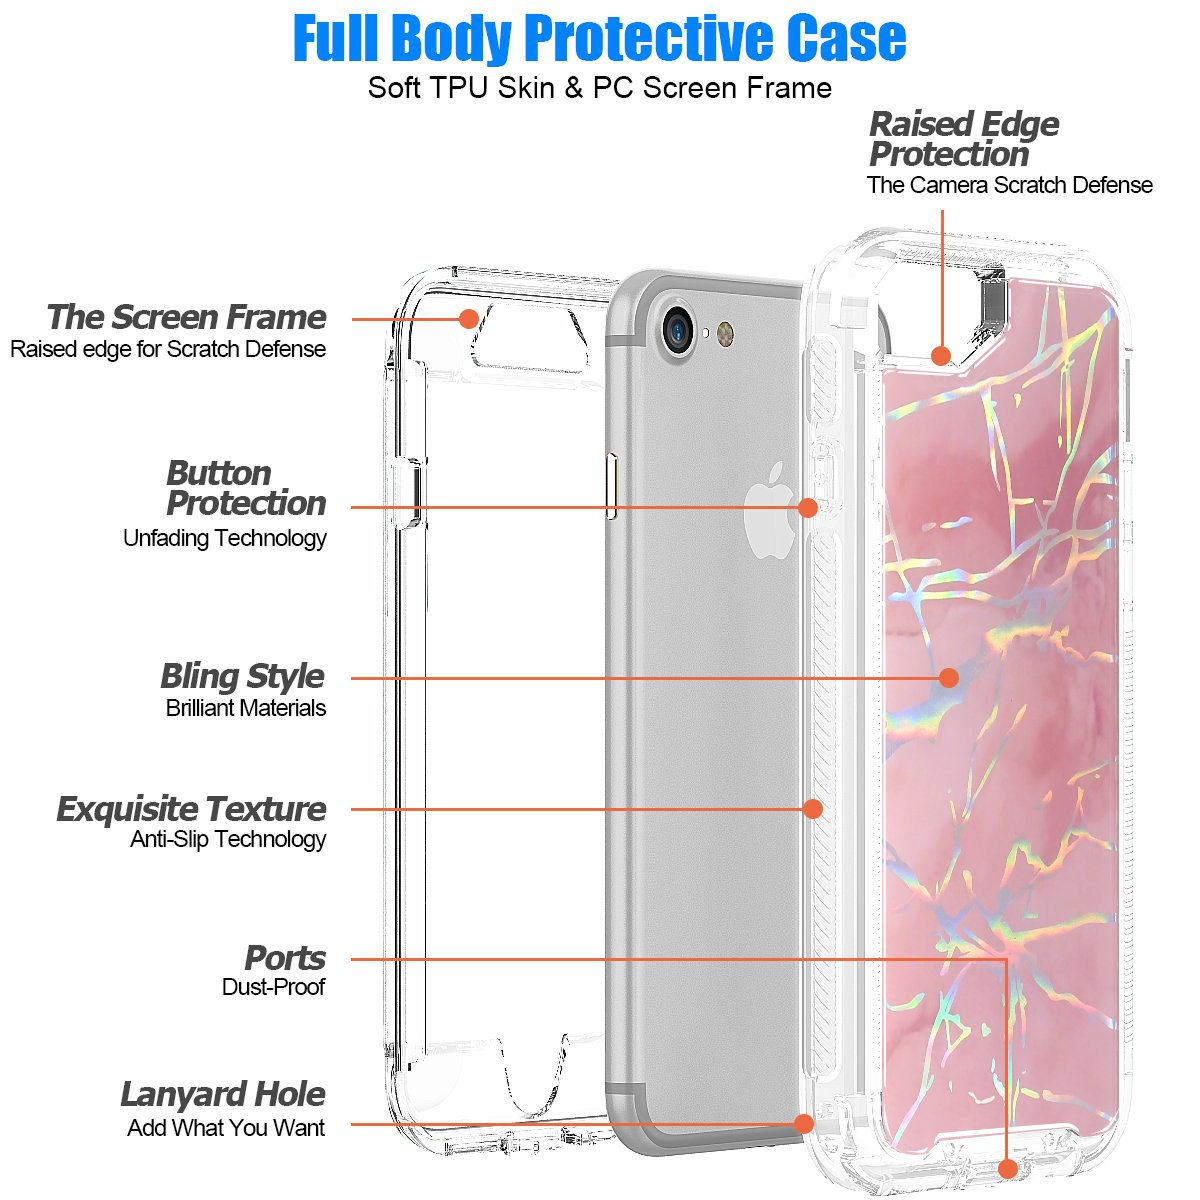 iPhone 6/6S Case, iPhone 7 Case, iPhone 8 Case, SEYMAC Shiny Marble Design Shock-Absorption, Anti-Scratch Bumper Cover for iPhone 6/iPhone 7/iPhone 8 [Pink]